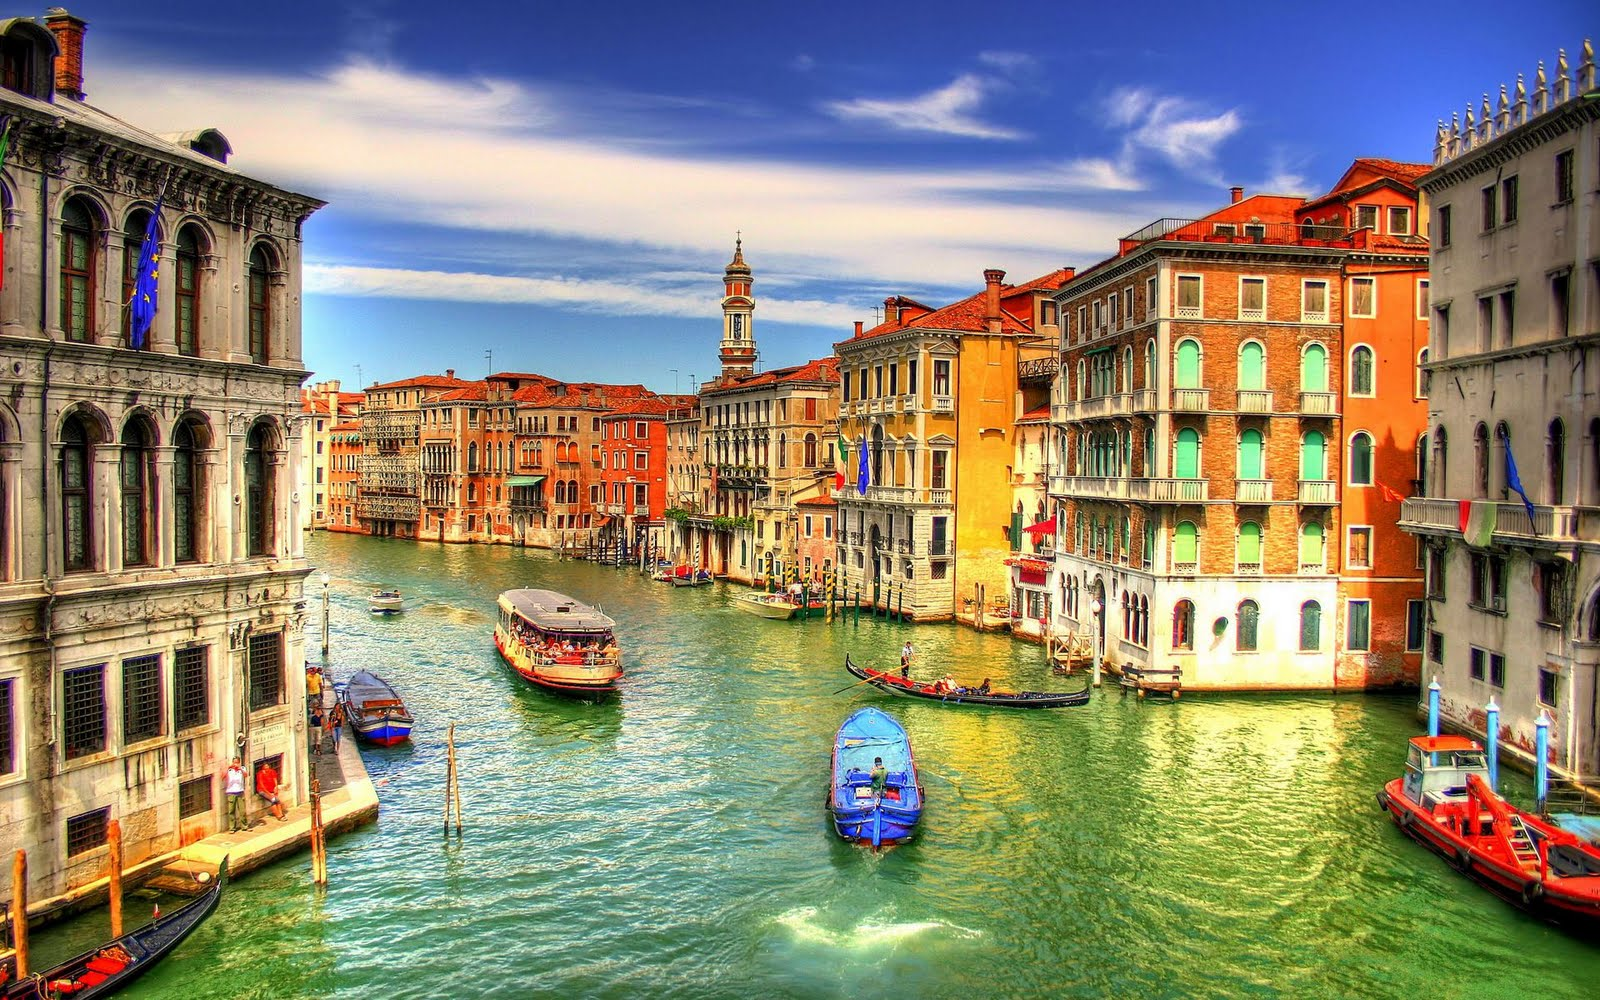 Hd Landscape Pictures From Venice